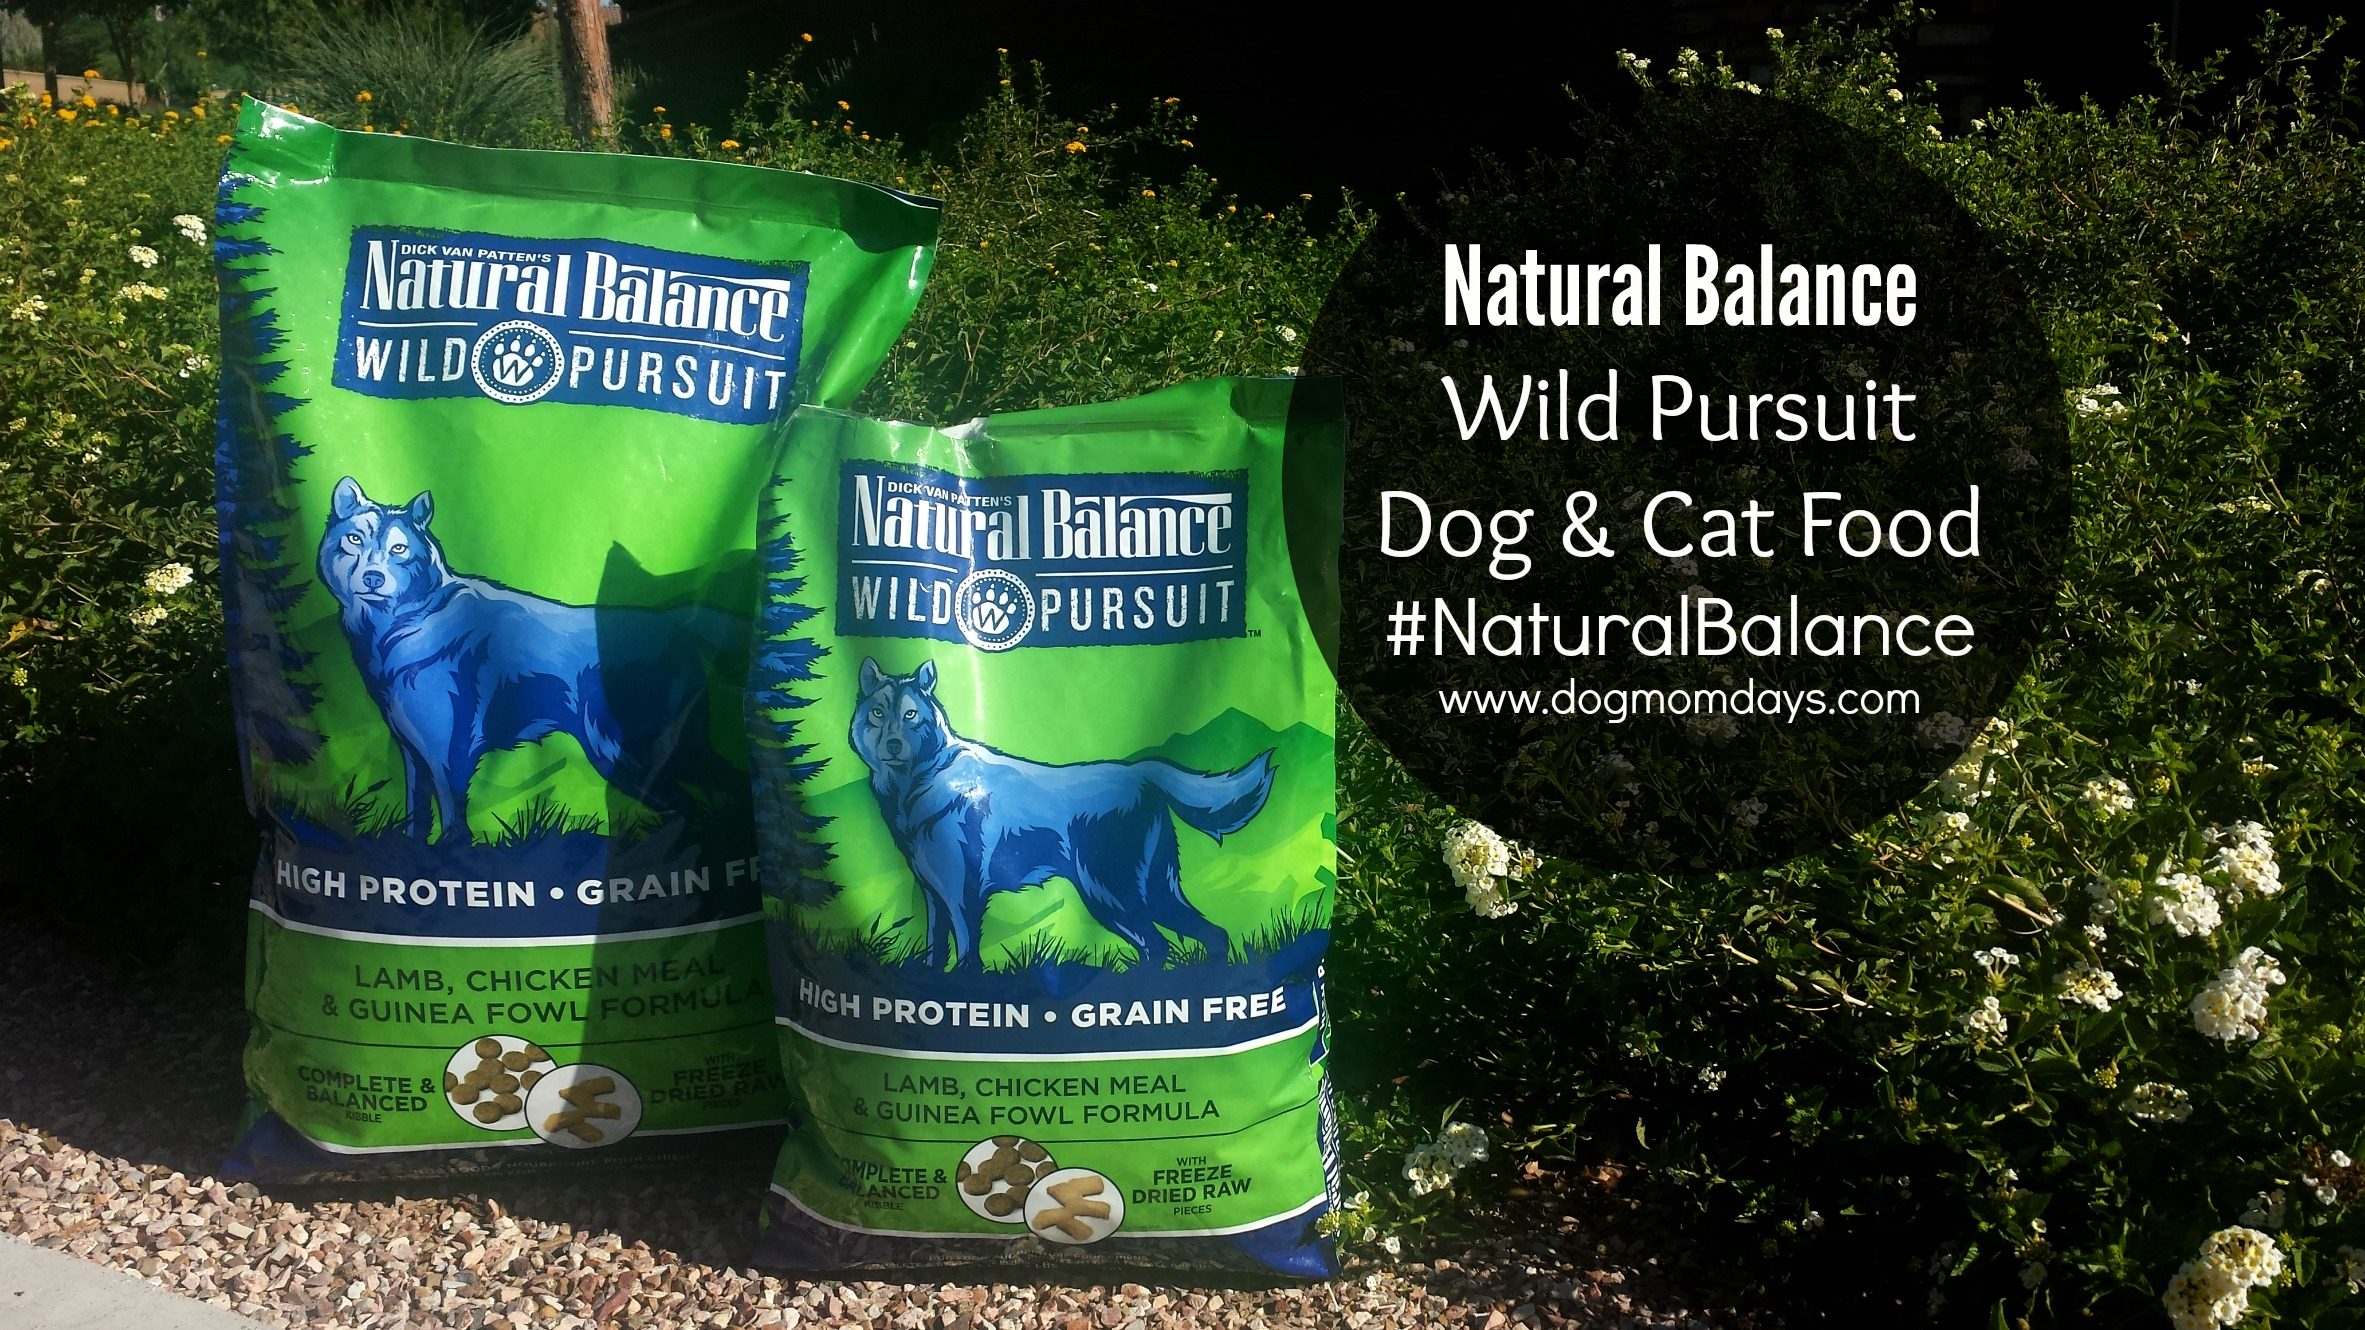 This post is sponsored by Natural Balance, and the BlogPaws Professional Pet Blogger Network. I am being compensated for helping spread the word about Natural Balance Wild Pursuit, but Dog Mom Days only shares information we feel is relevant to our readers. Natural Balance is not responsible for the content of this article.